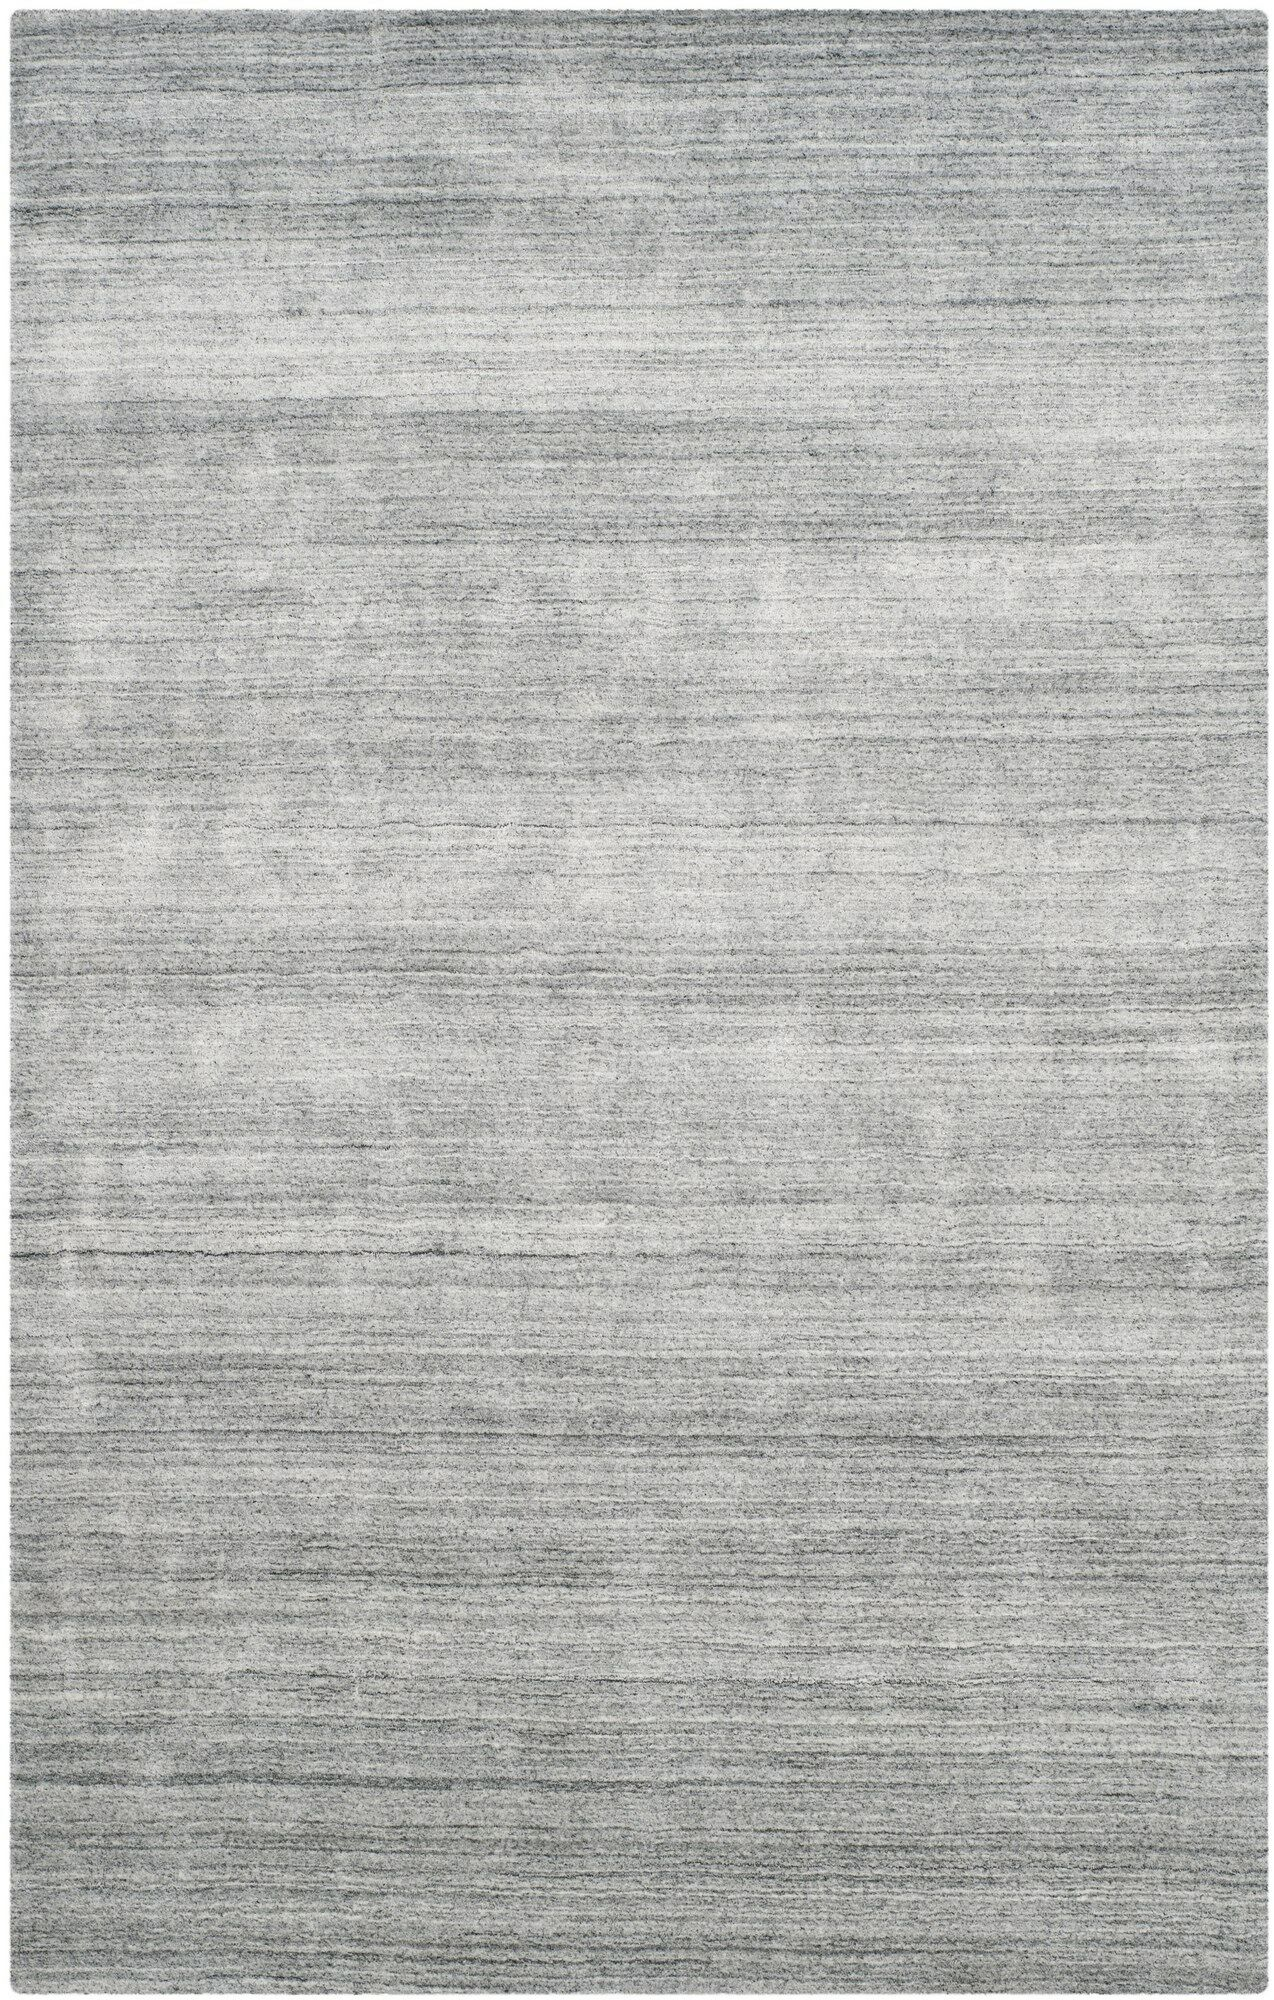 Leontine Hand-Loomed Ivory/Gray Area Rug Rug Size: Rectangle 9' x 12'